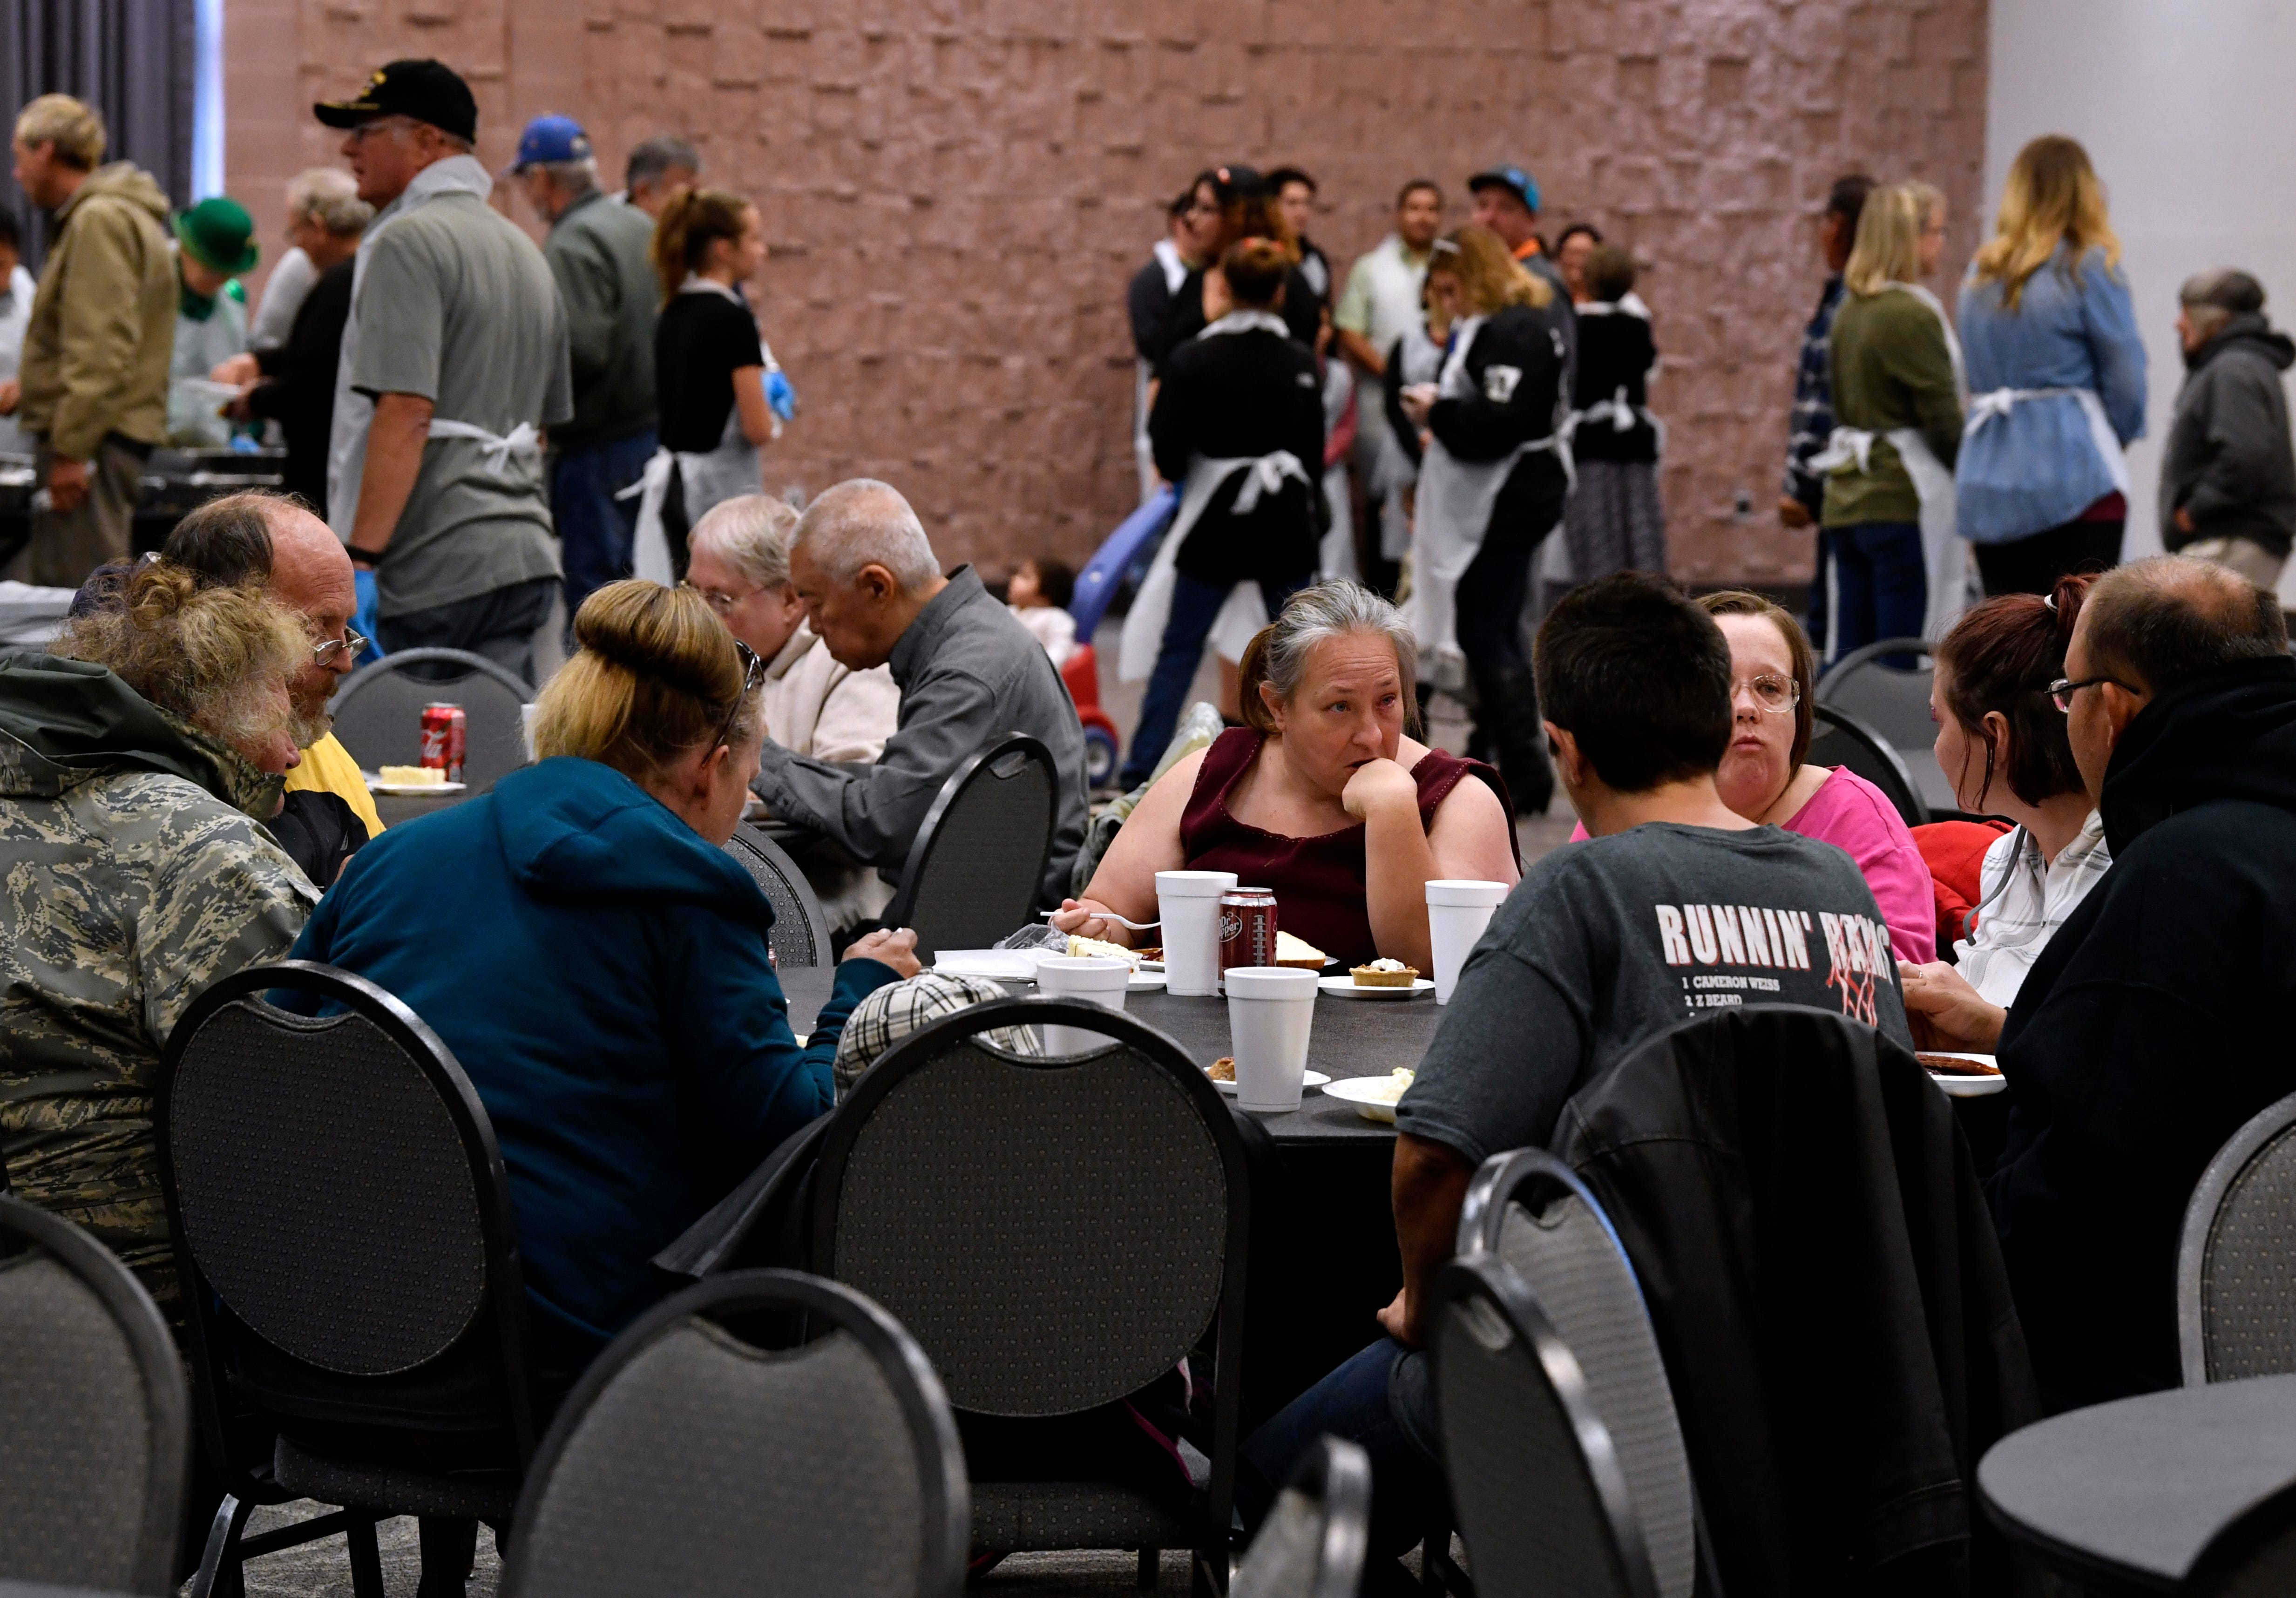 Diners eat and wait in line during Operation Thanksgiving Thursday at the Abilene Convention Center. The annual free holiday meal is sponsored by the Taylor County Veterans Service Office.